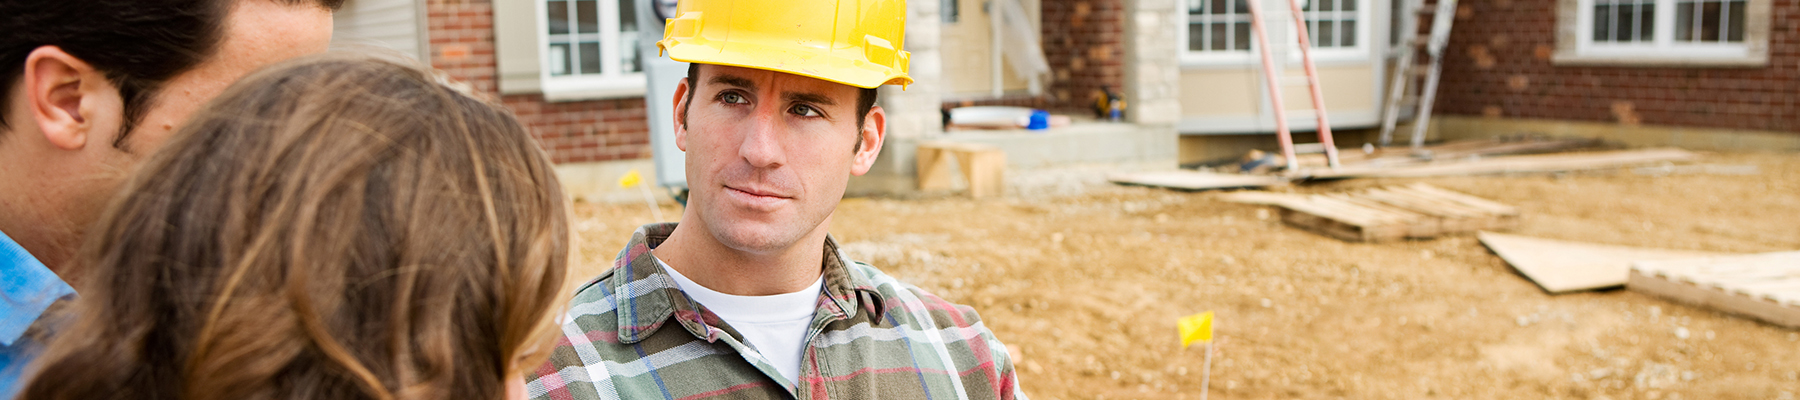 Builder gets the commercial real estate loan needed